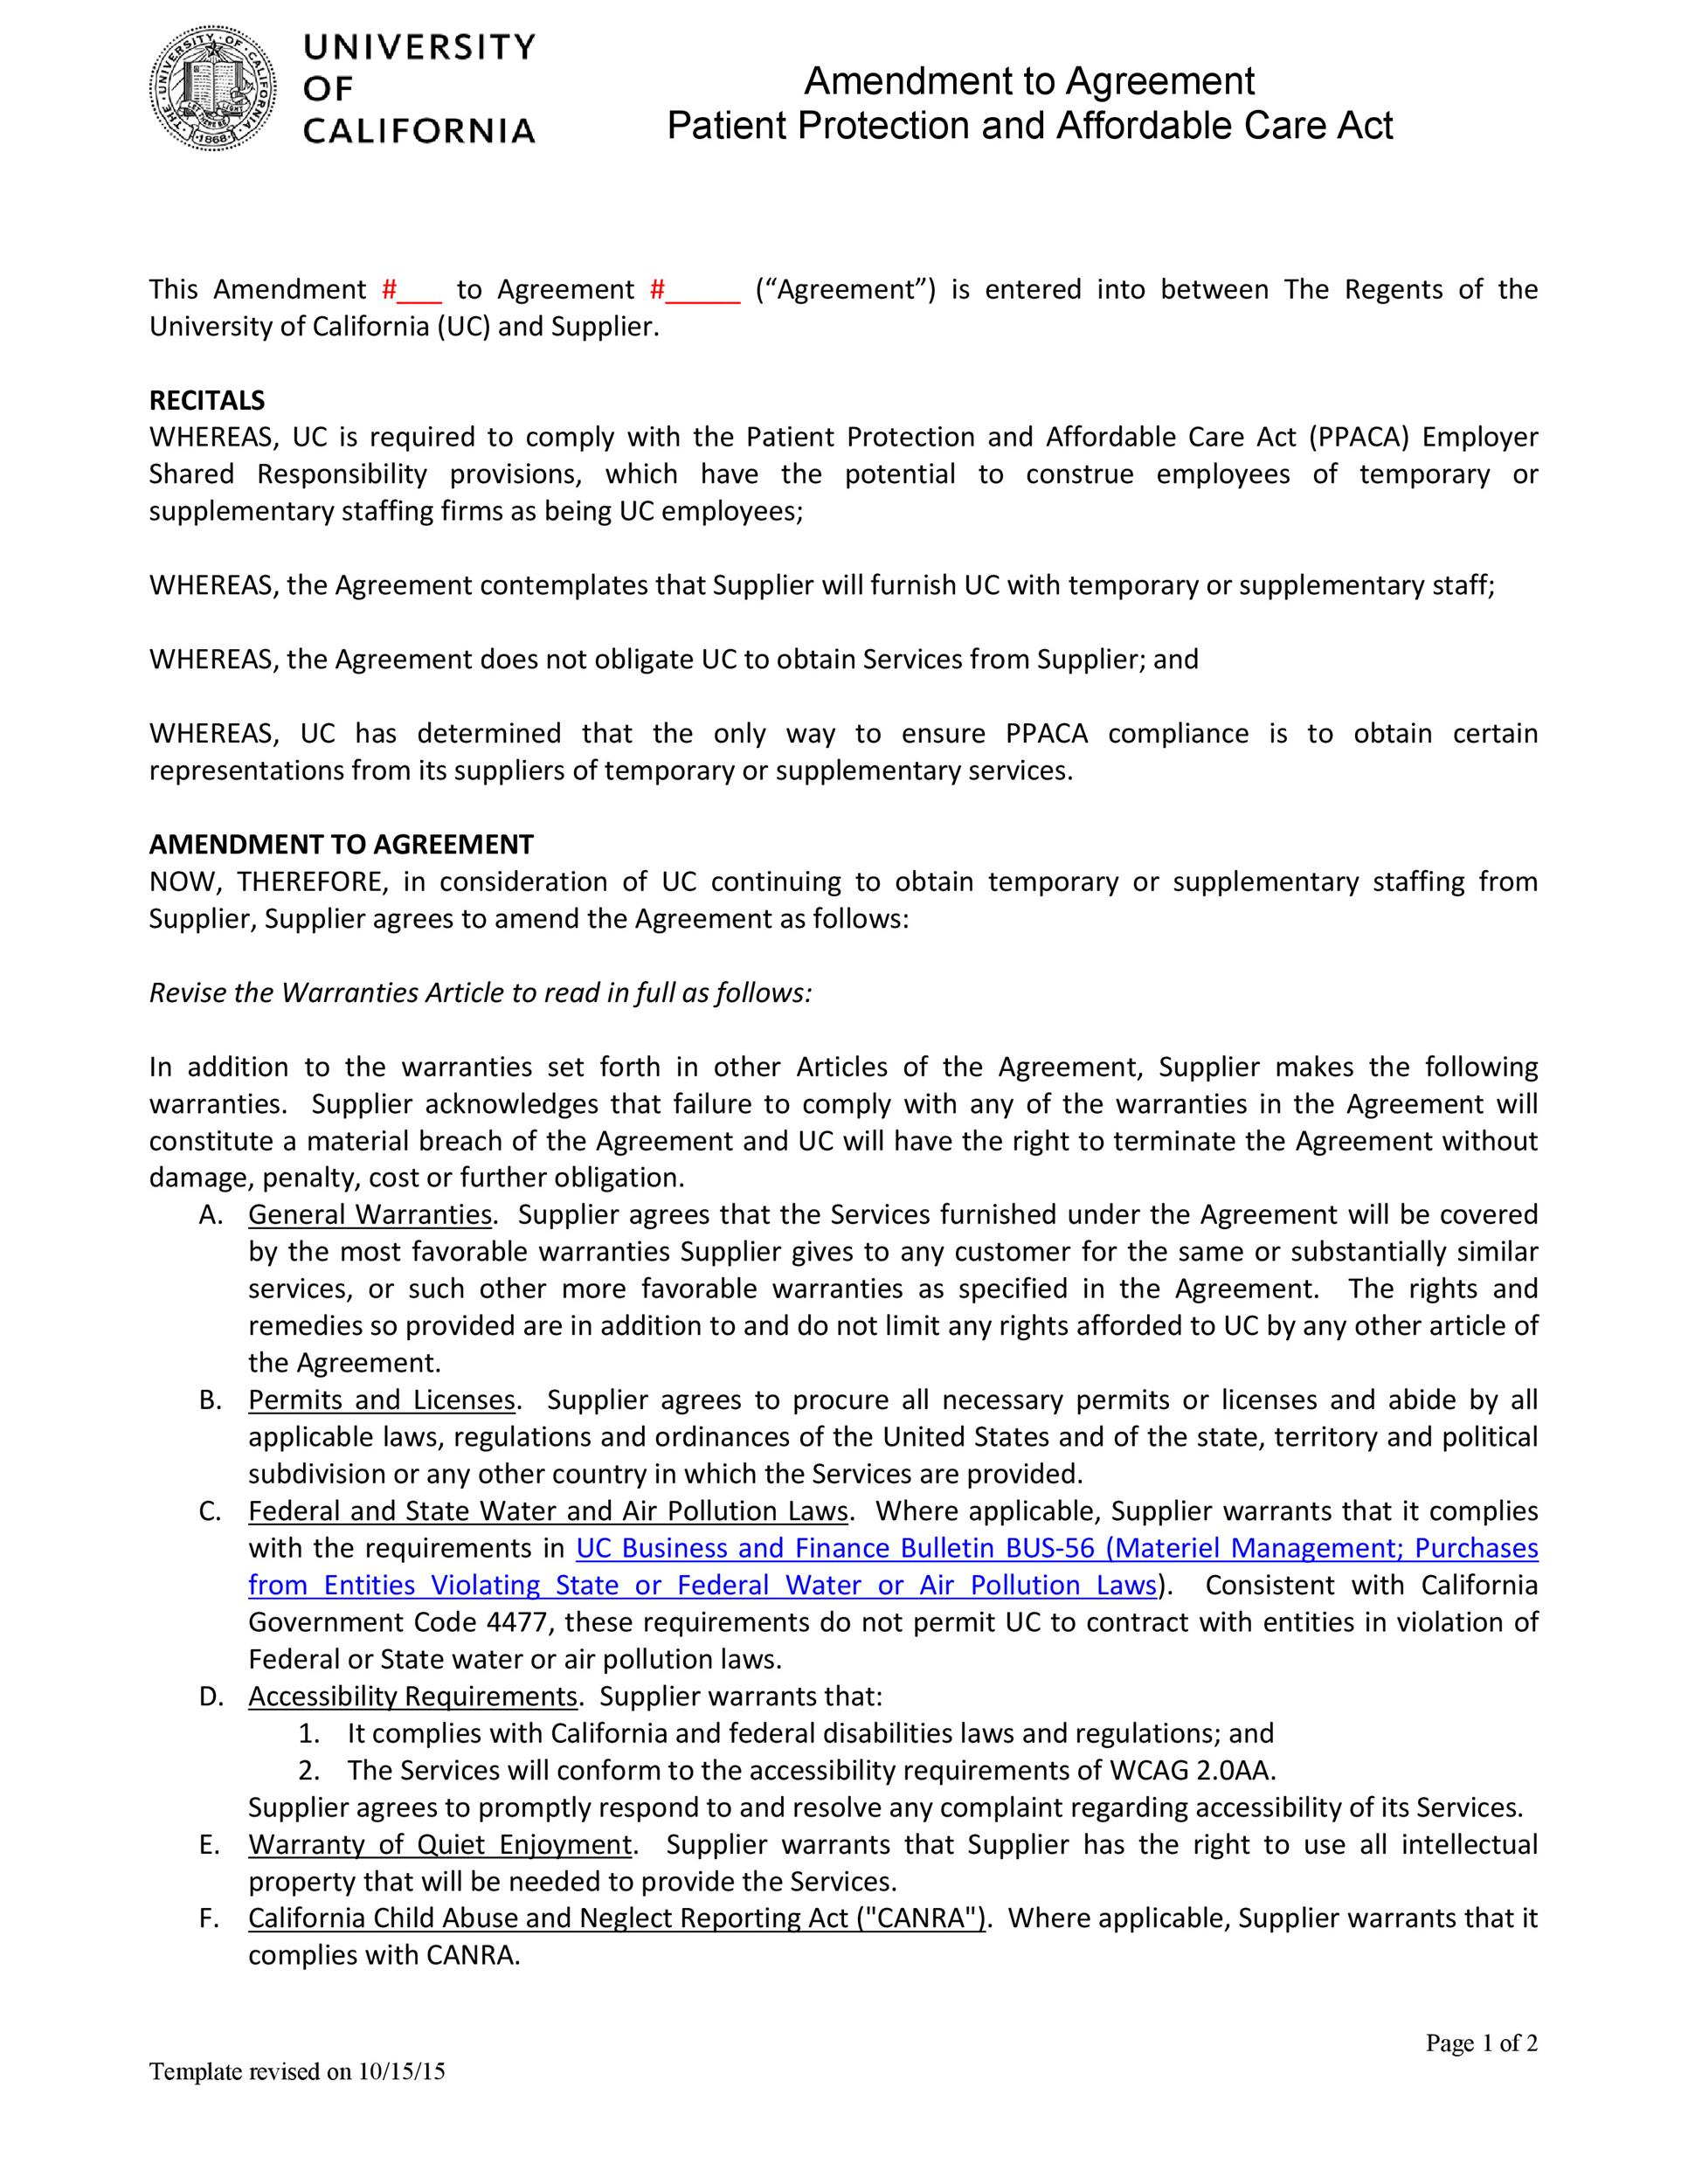 Free contract amendment 08